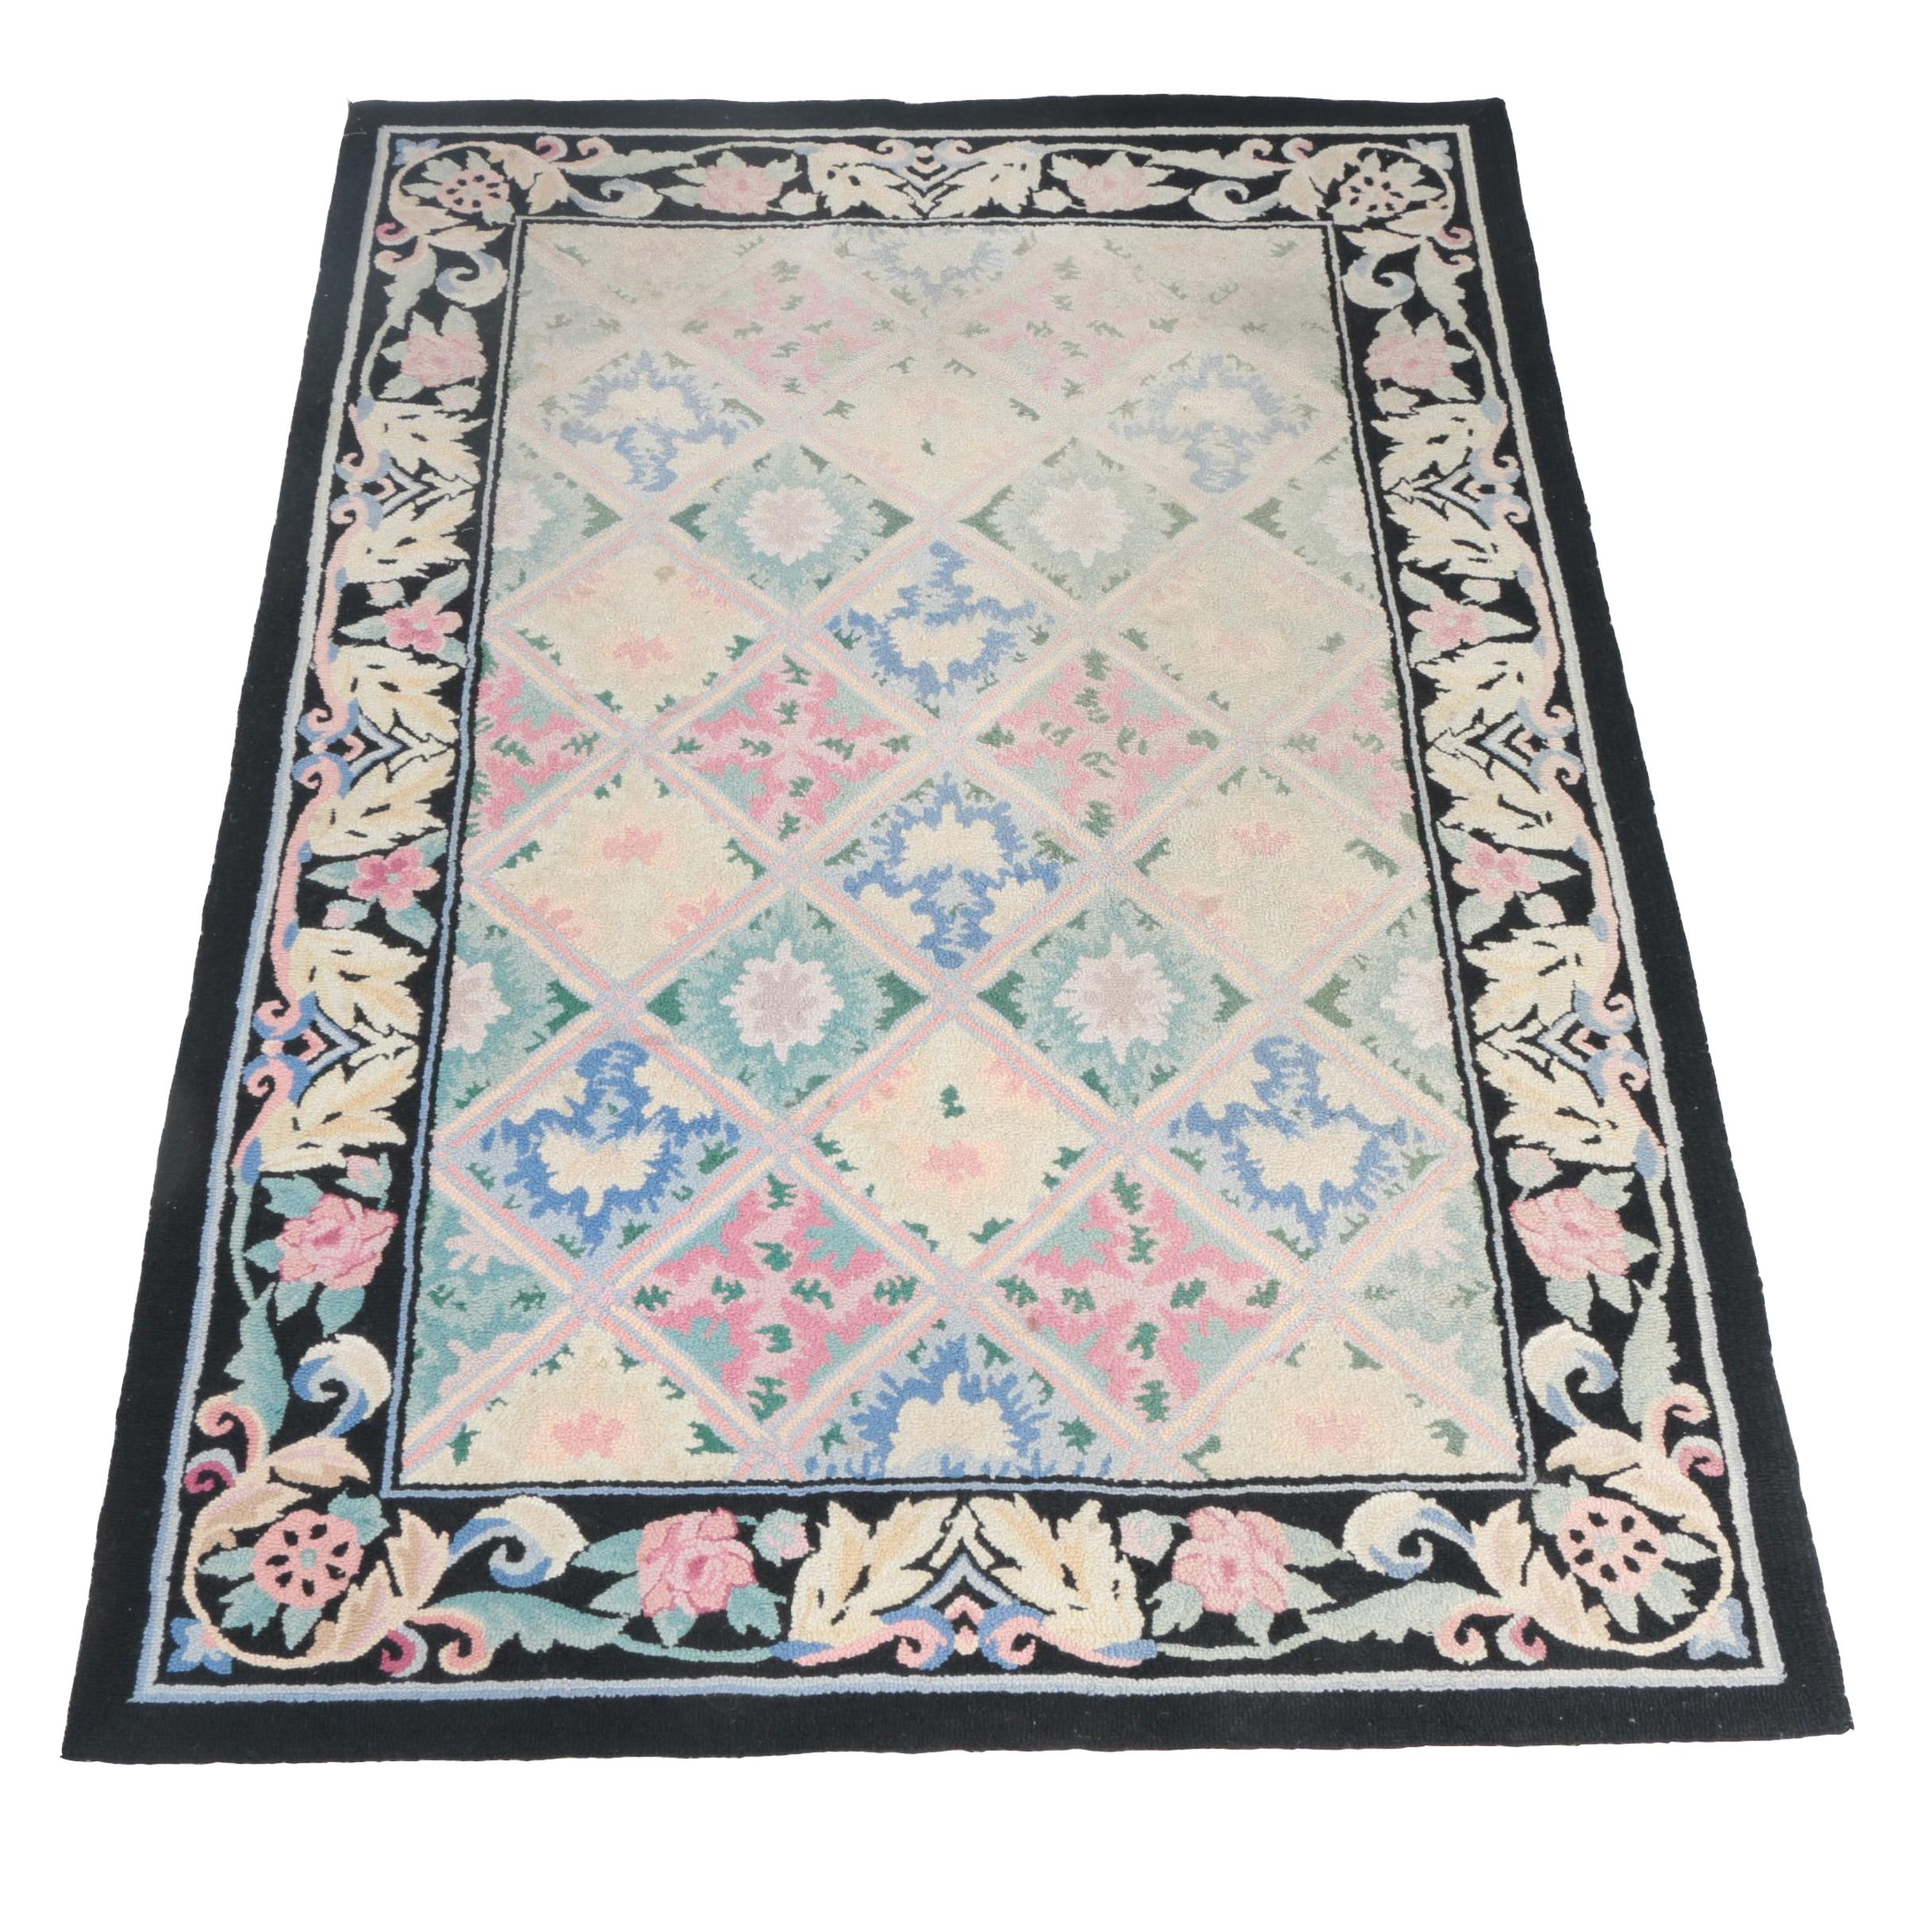 Hand-Hooked Wool Floral Area Rug